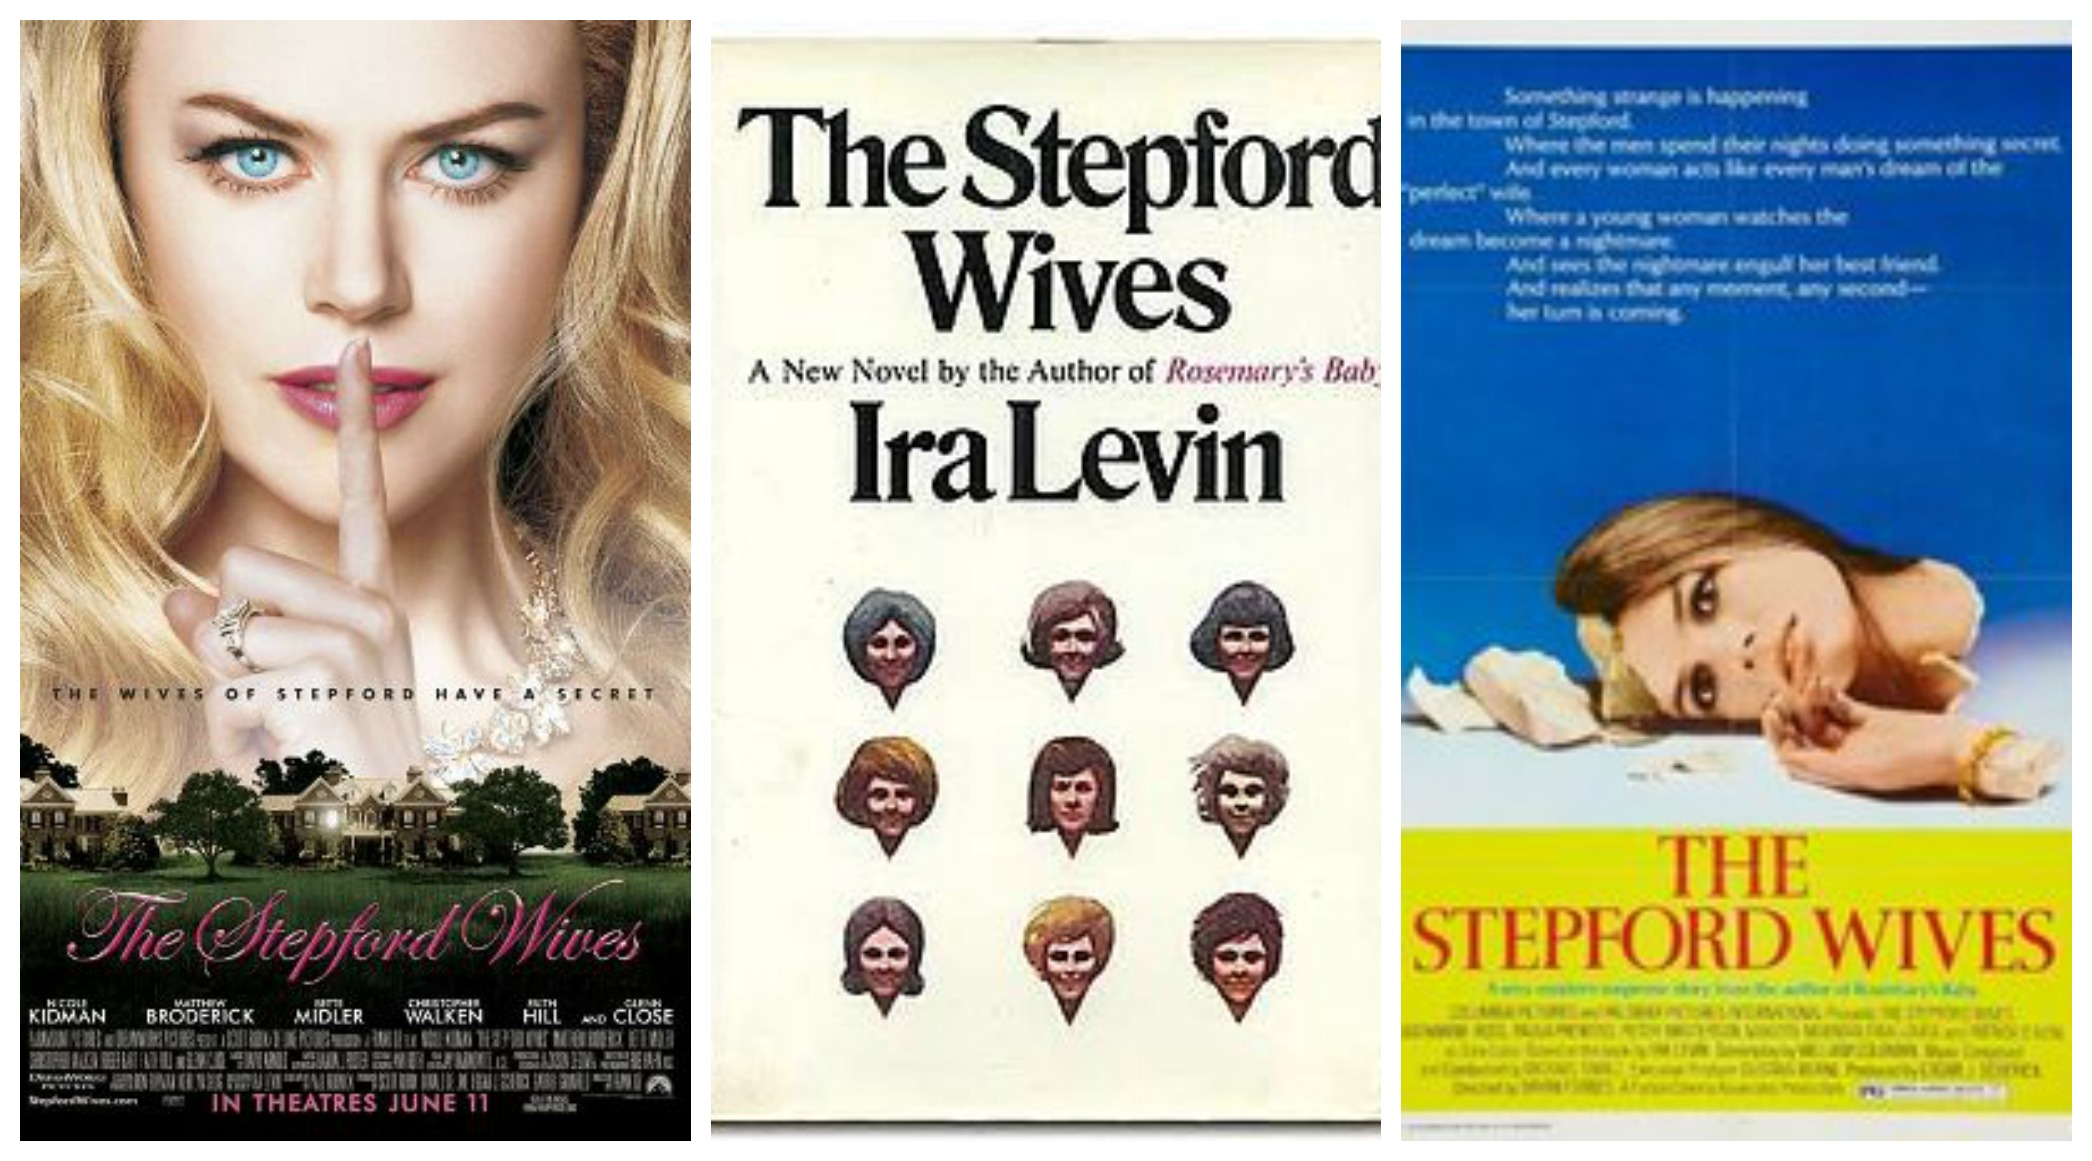 essays iris online The Stepford Wives